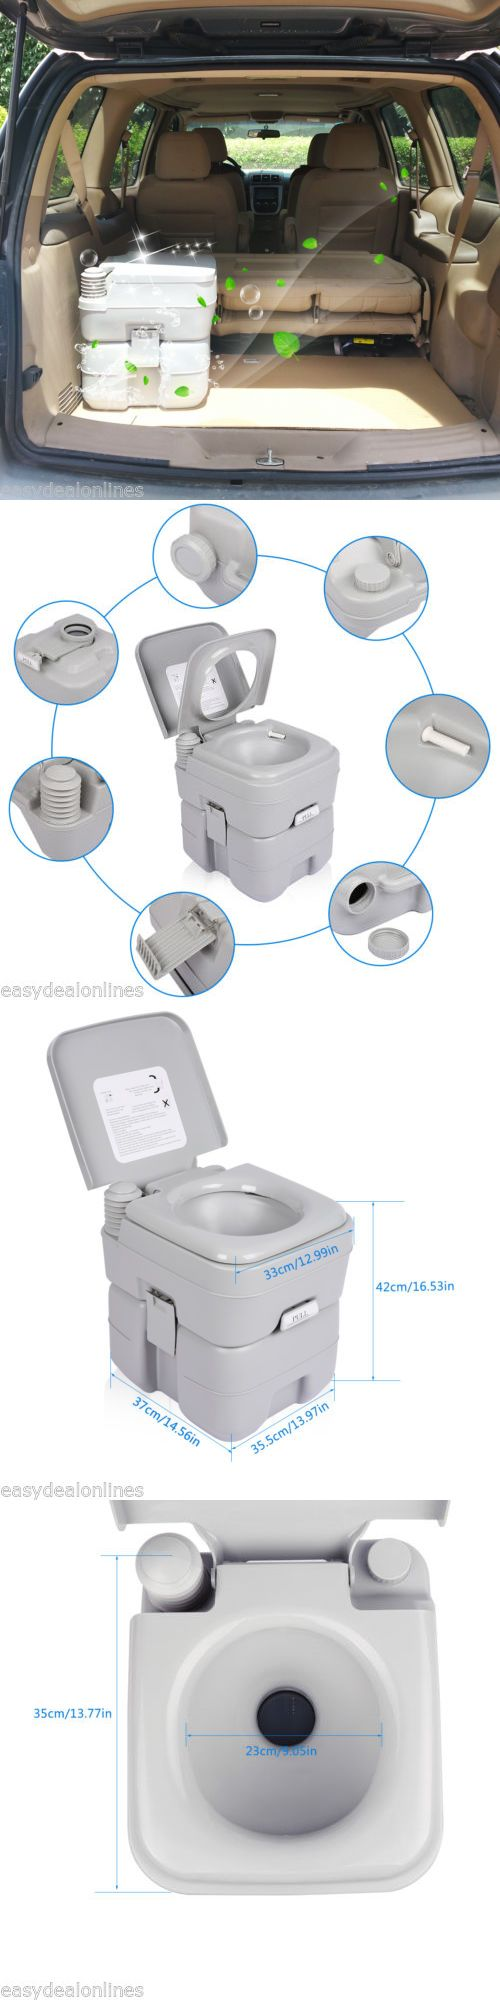 Portable Toilets and Accessories 181397: 20L 5 Gallon Portable Flush Porta Potti Camping Travel Toilet Indoor Outdoor Wc -> BUY IT NOW ONLY: $56.99 on eBay!